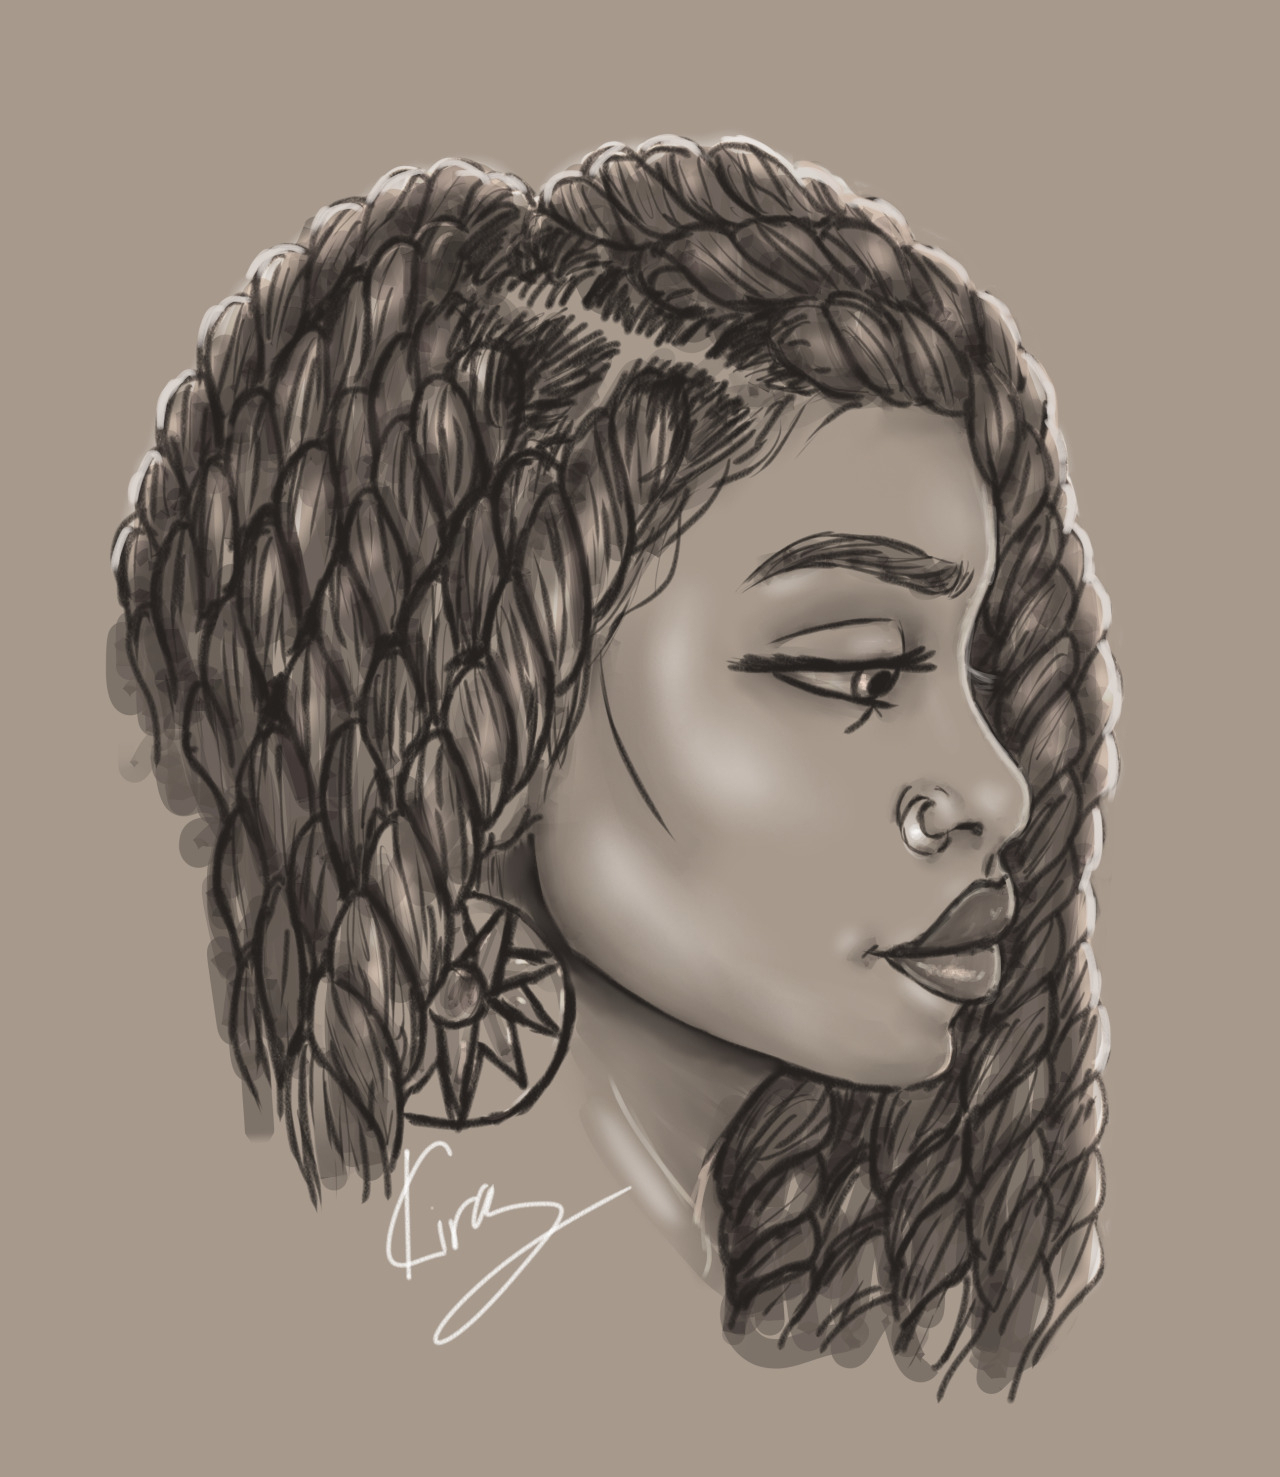 1280x1477 Black Girl Drawing Tumblr Black Girl Drawing Tumblr African